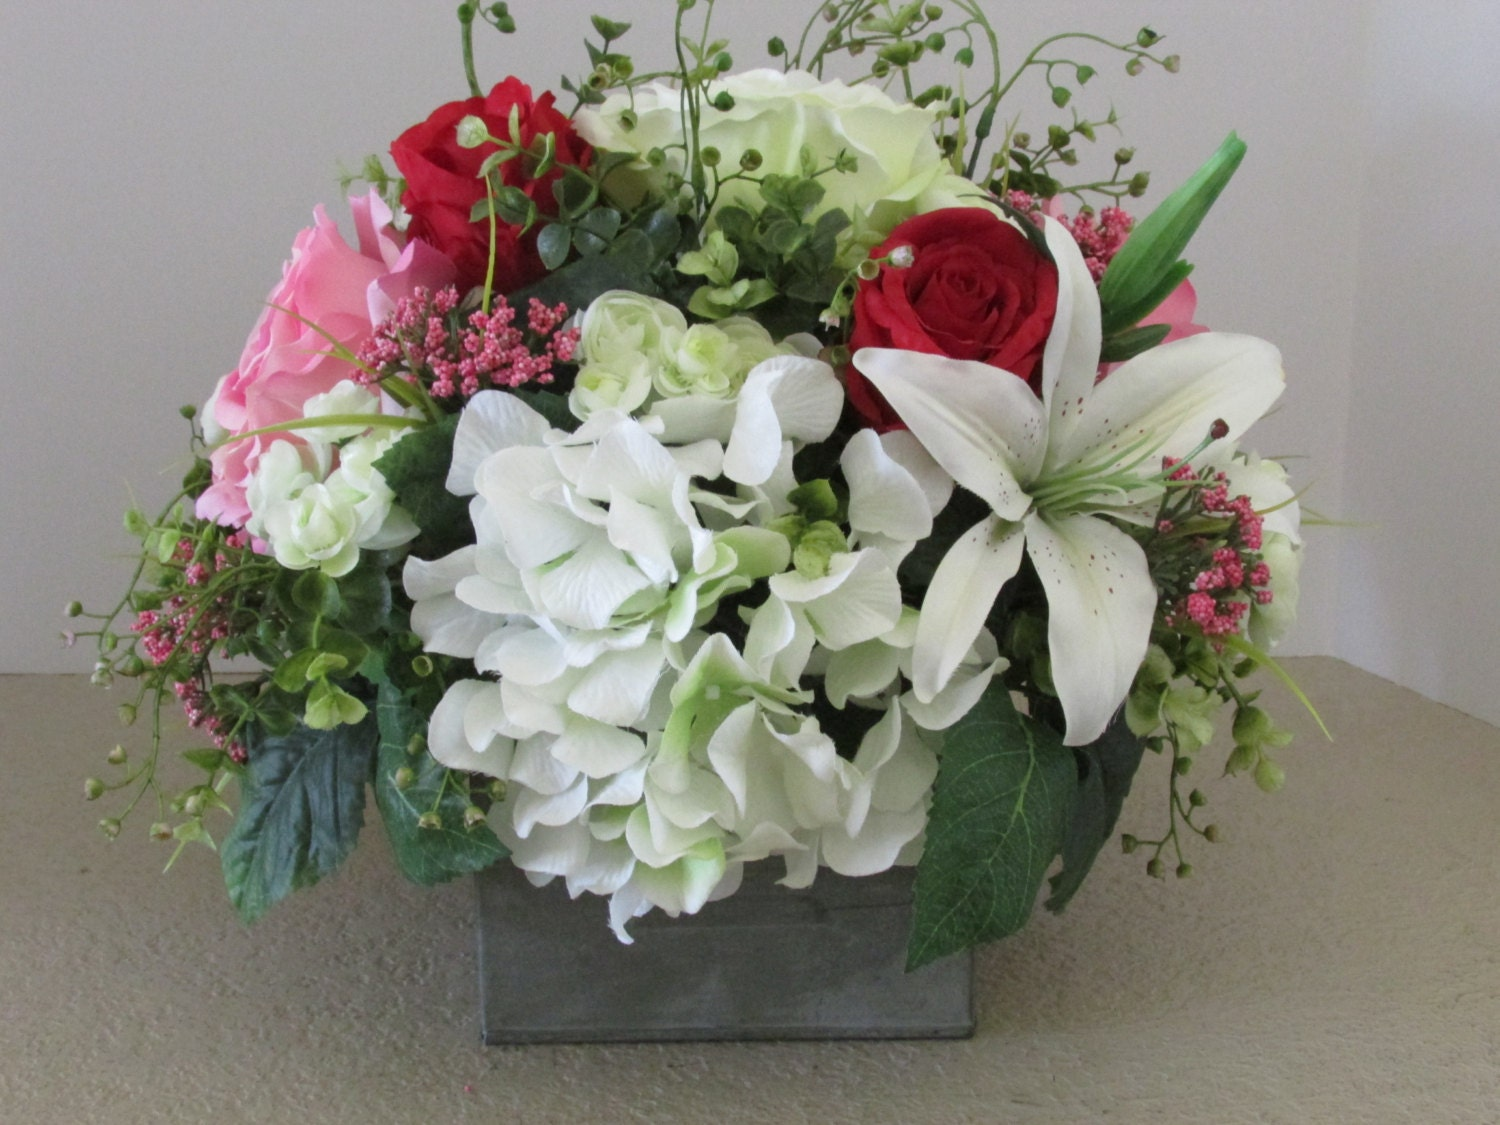 Silk flower arrangement metal container floral centerpiece